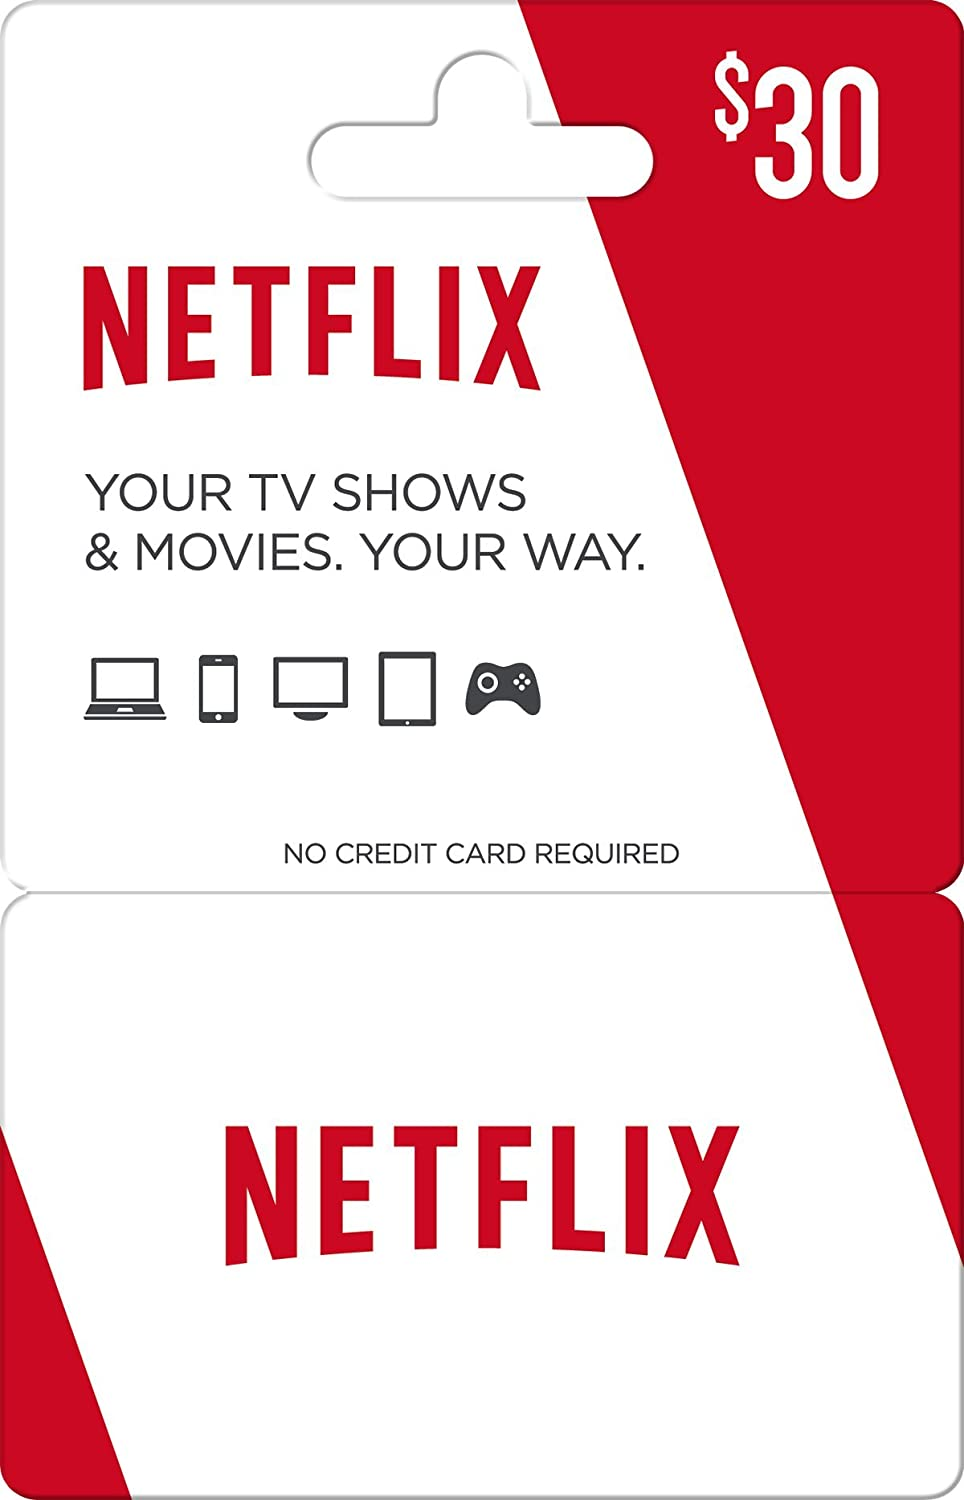 Netflix Gift Card $30: Amazon.com: Gift Cards